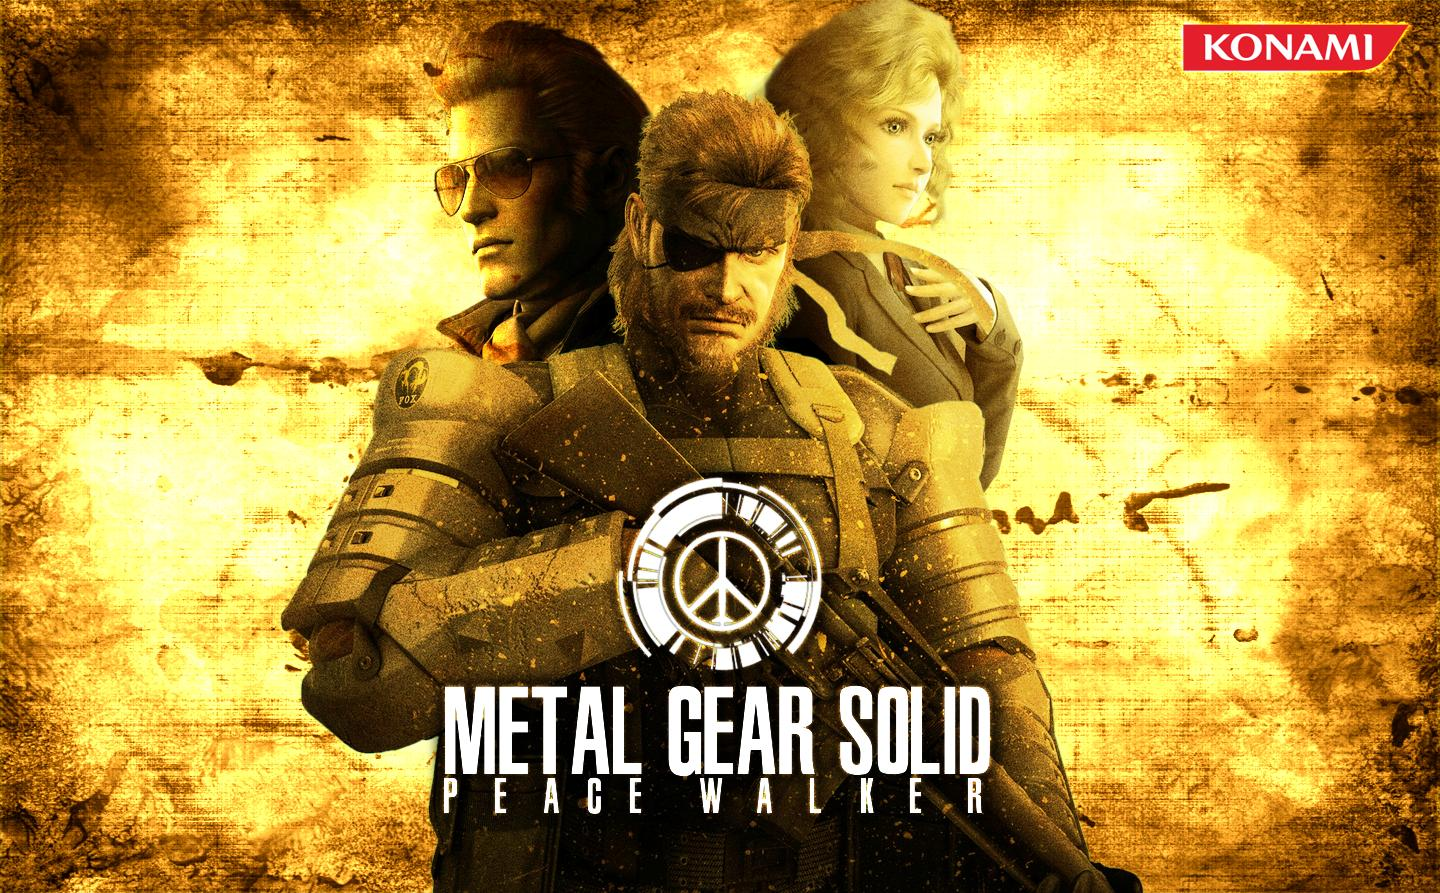 Metal Gear Solid Peace Walker  Start Time: Dec. 6th 10 PM Pacific